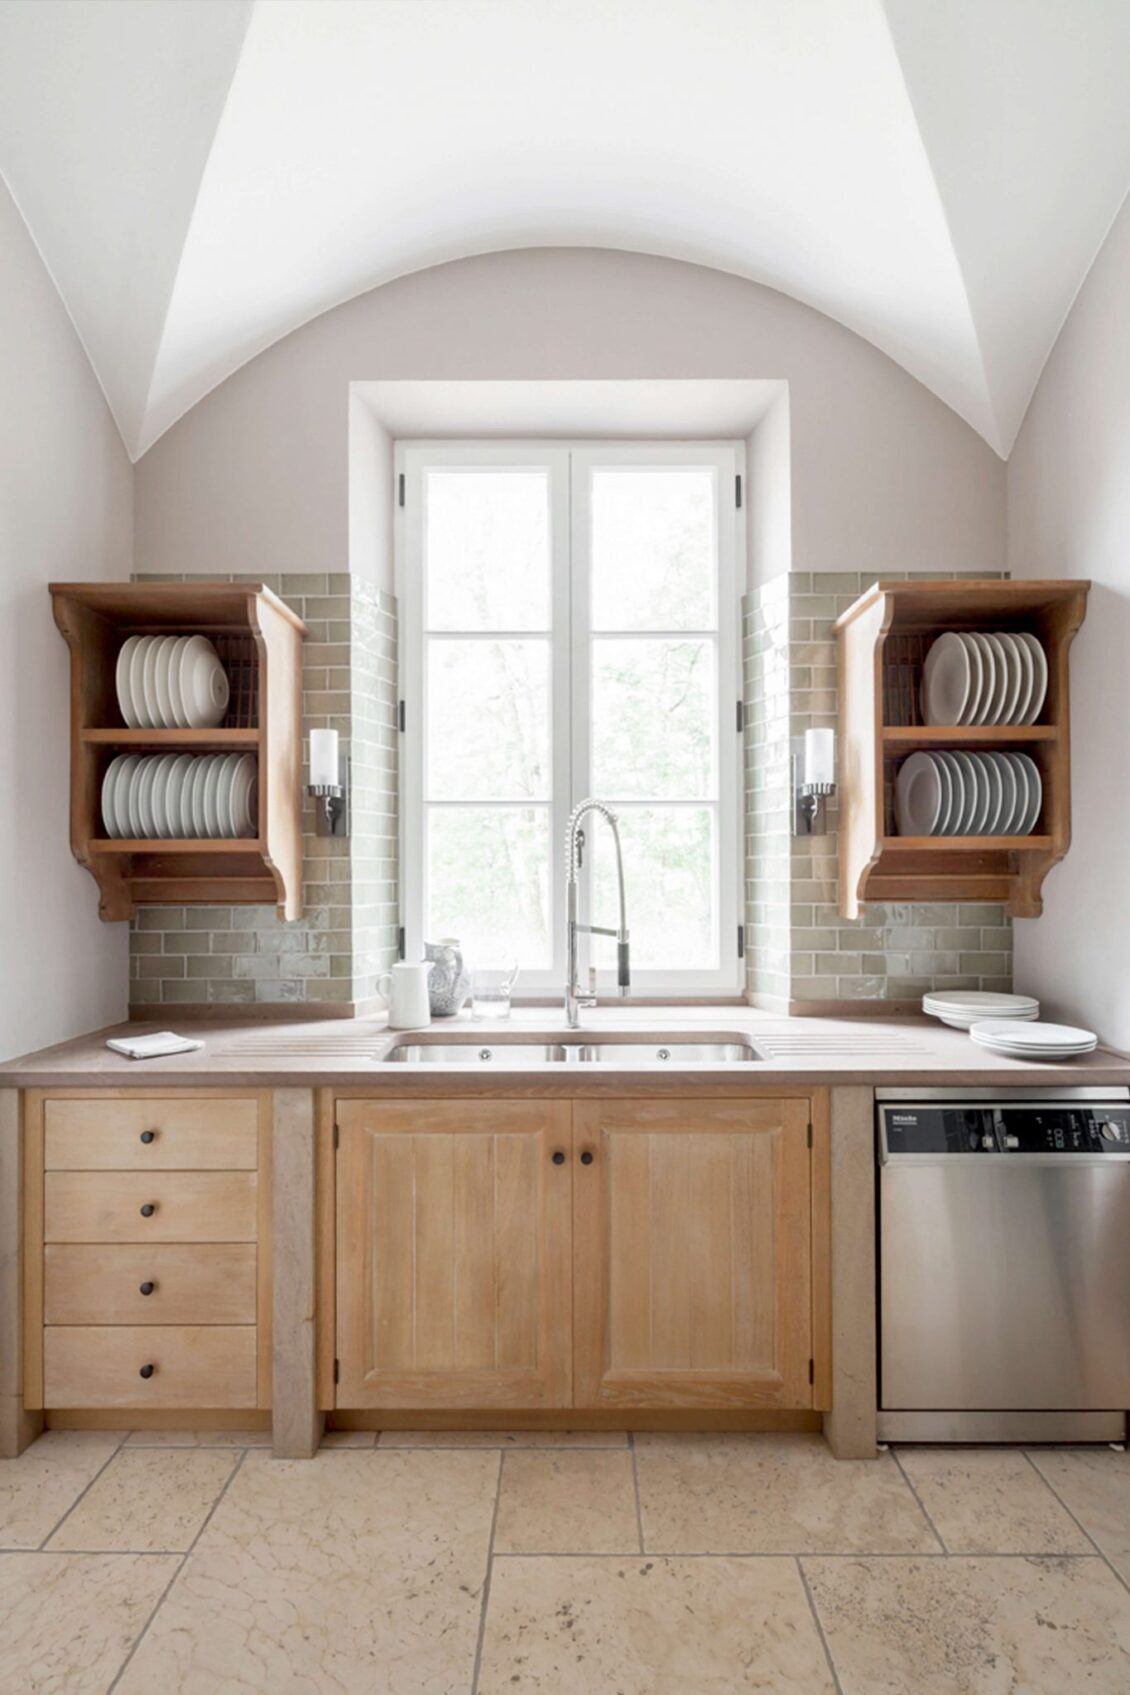 Design Inspiration Creating Your Own Tuscan Inspired Kitchen